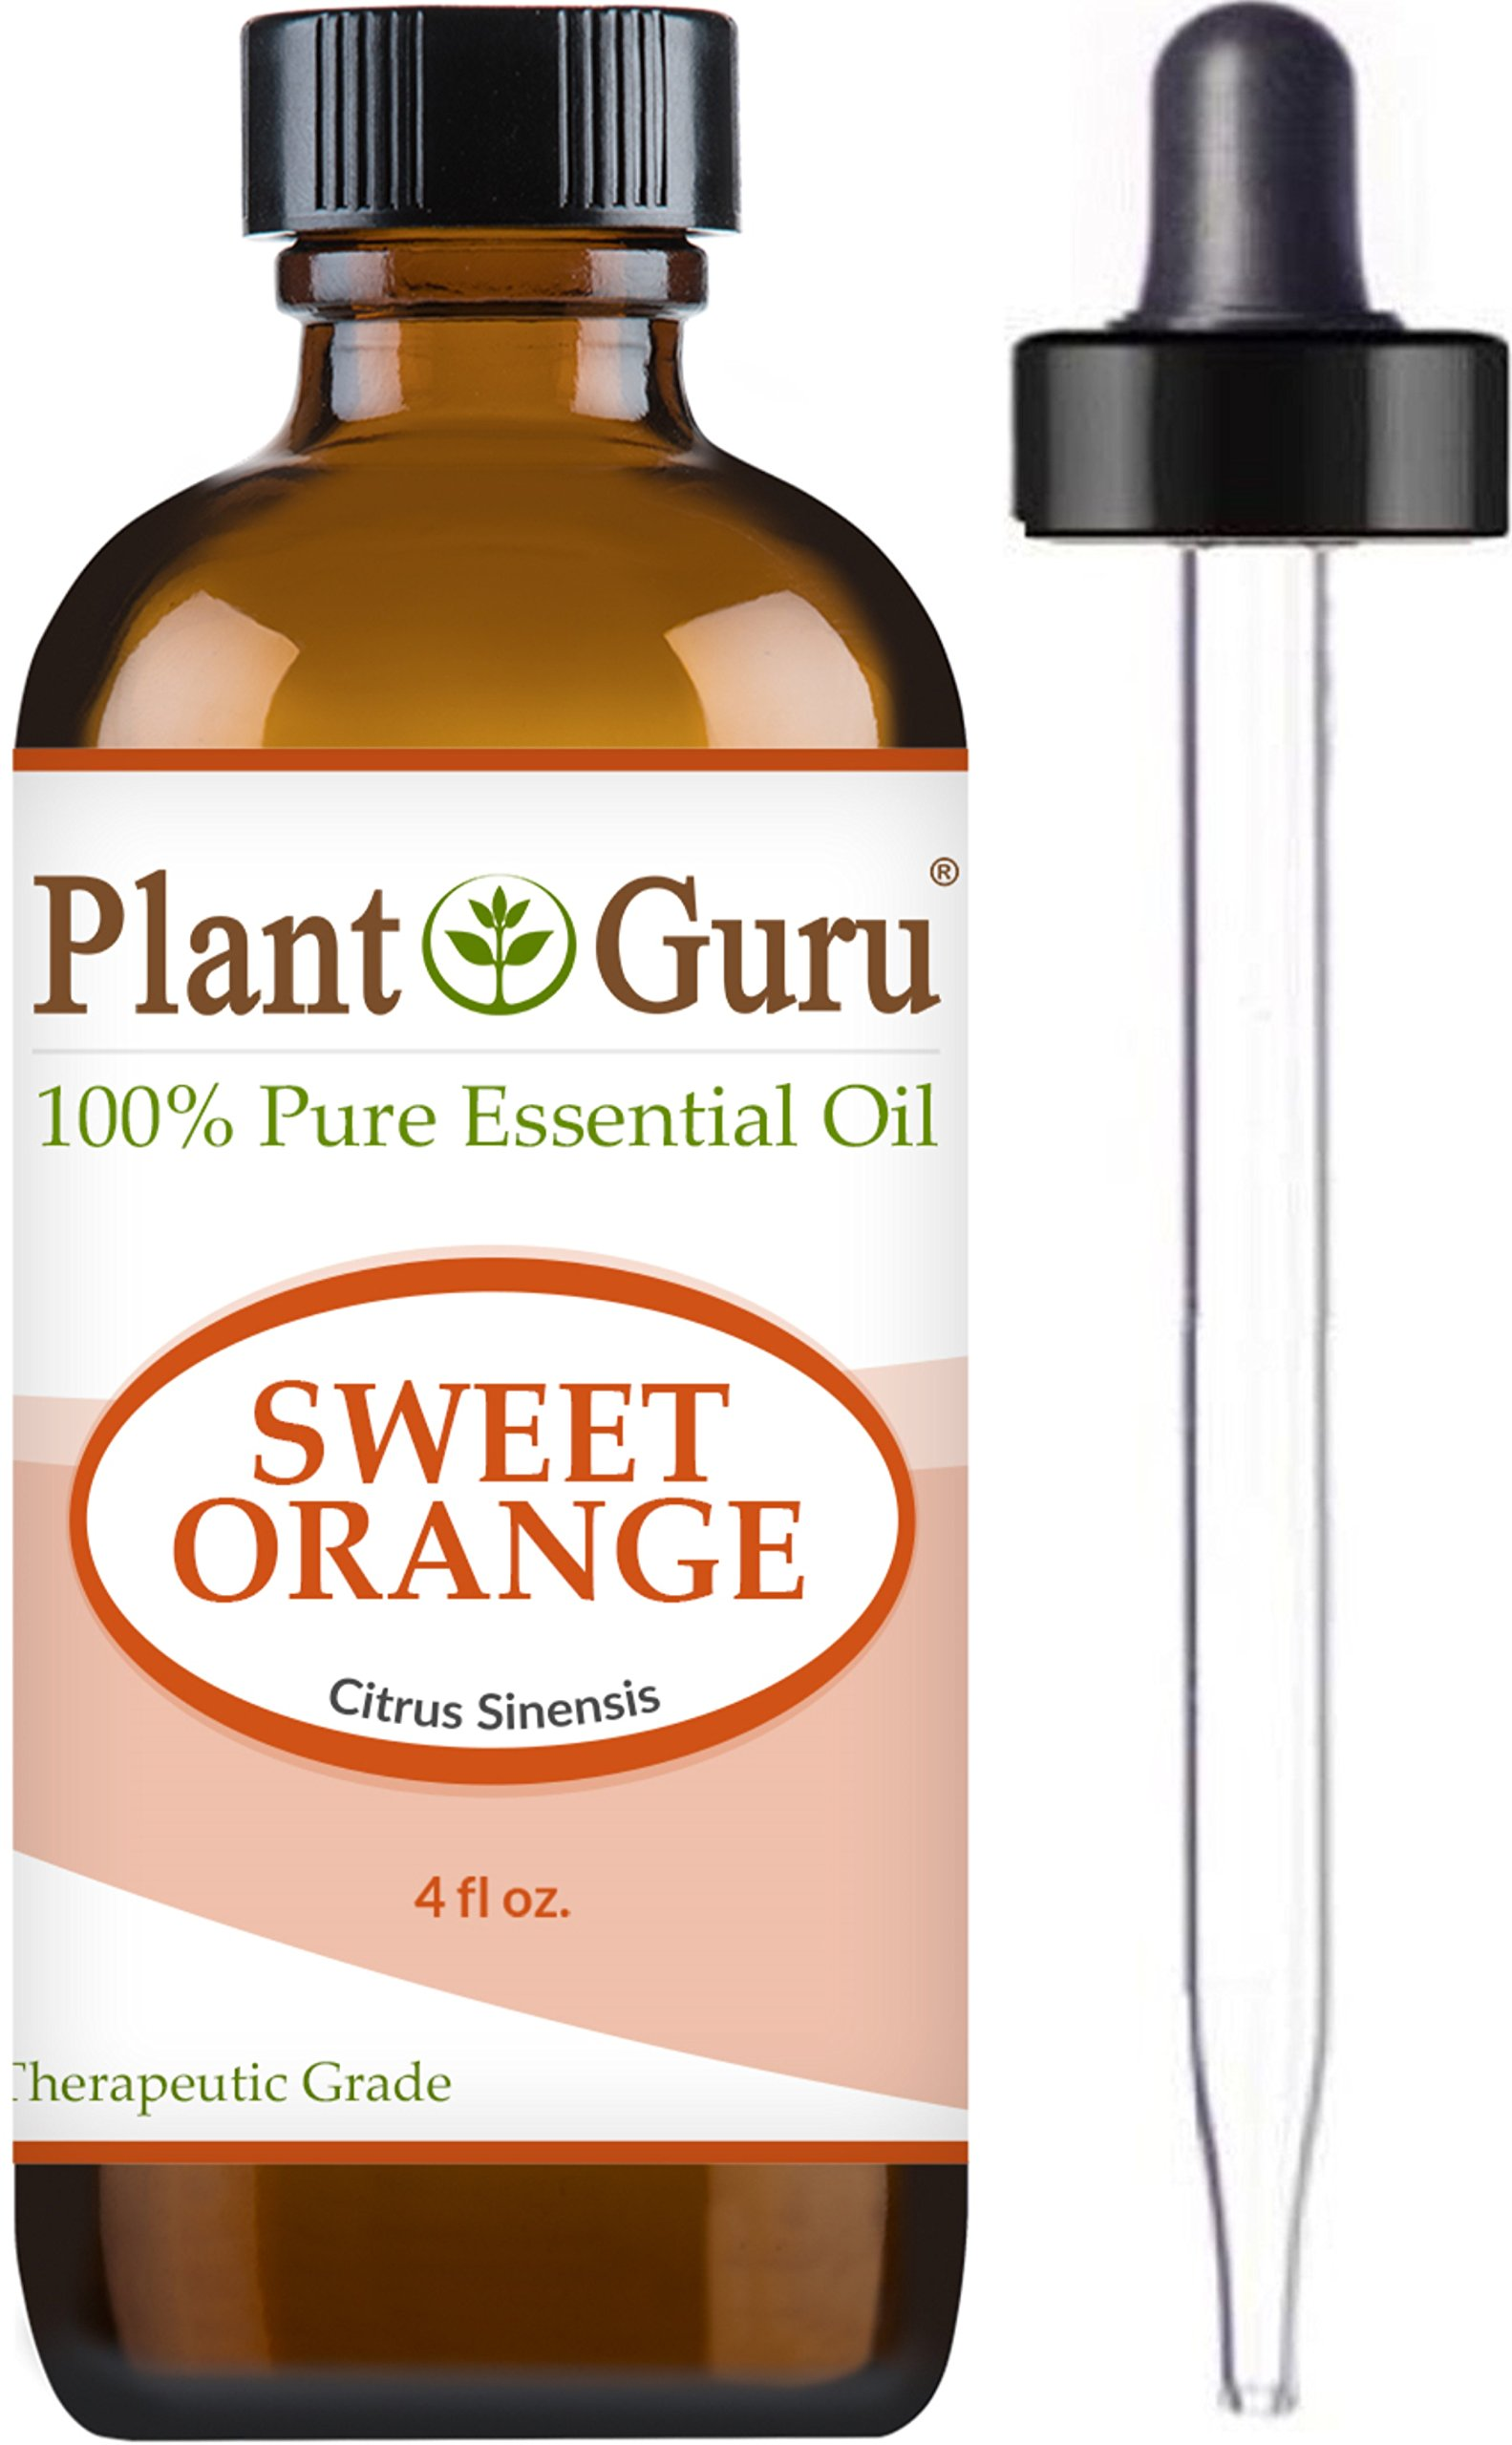 Sweet Orange Essential Oil 4 oz. 100% Pure Undiluted Therapeutic Grade Citrus Sinensis , Cold Pressed From Fresh Orange Peel, Great for Aromatherapy Diffuser, Relaxation and Calming, Natural Cleaner.